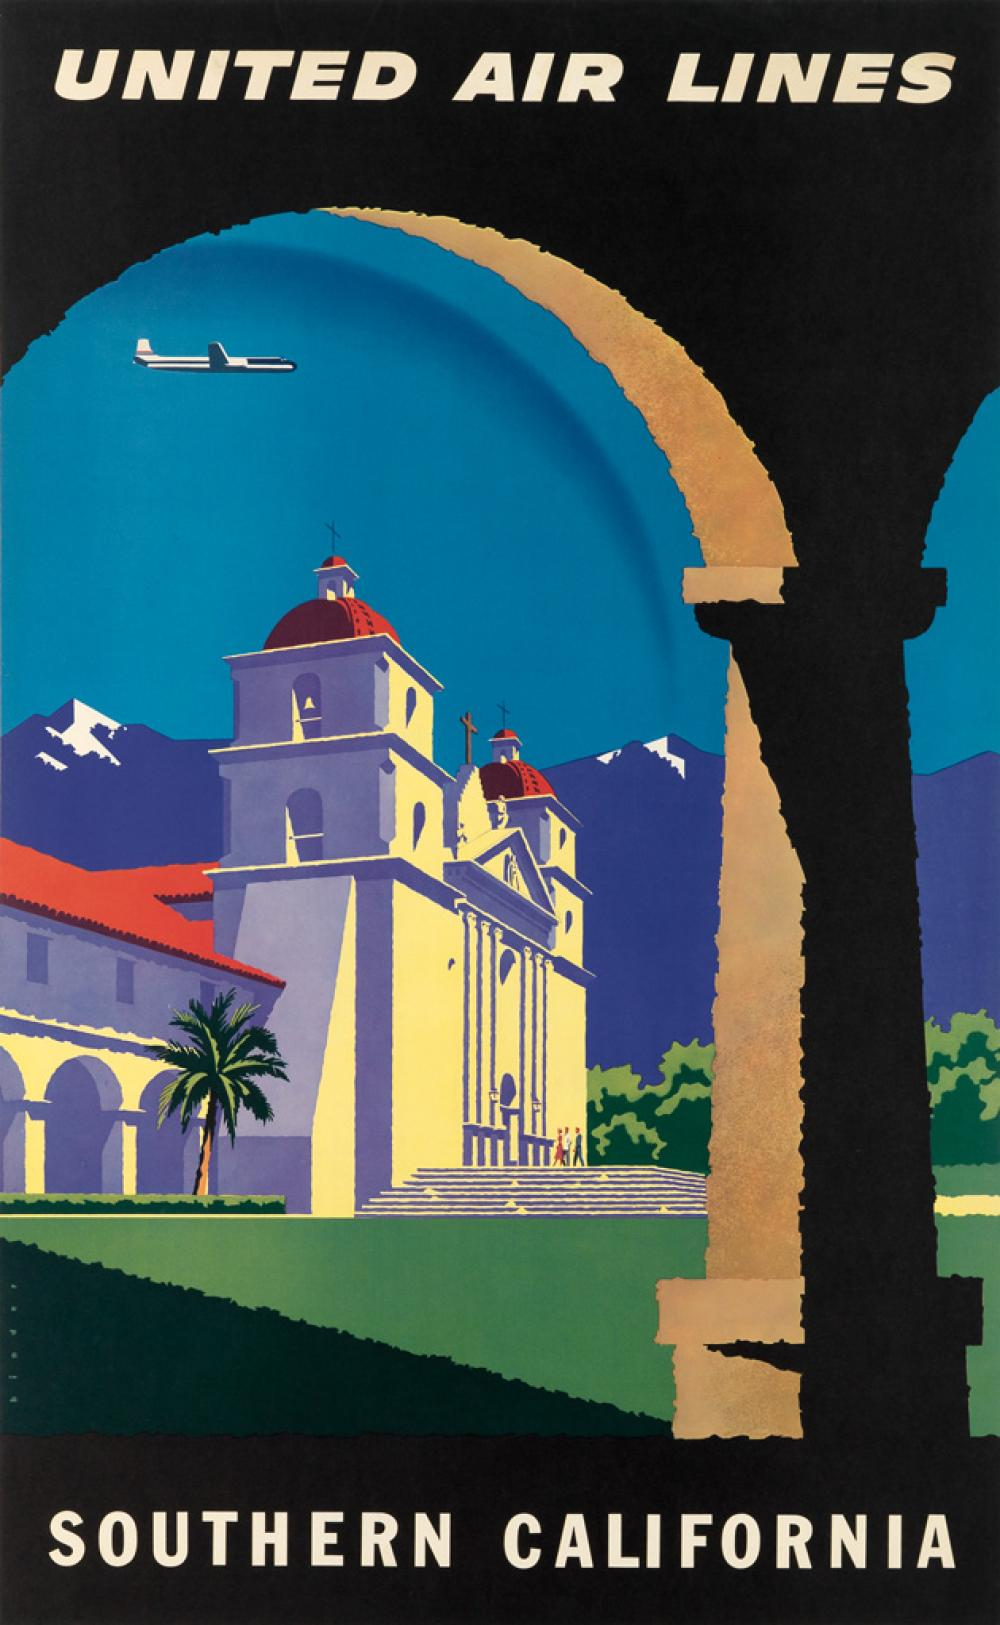 JOSEPH BINDER (1898-1972). UNITED AIR LINES / SOUTHERN CALIFORNIA. Circa 1952. 39x24 inches, 101x63 cm.